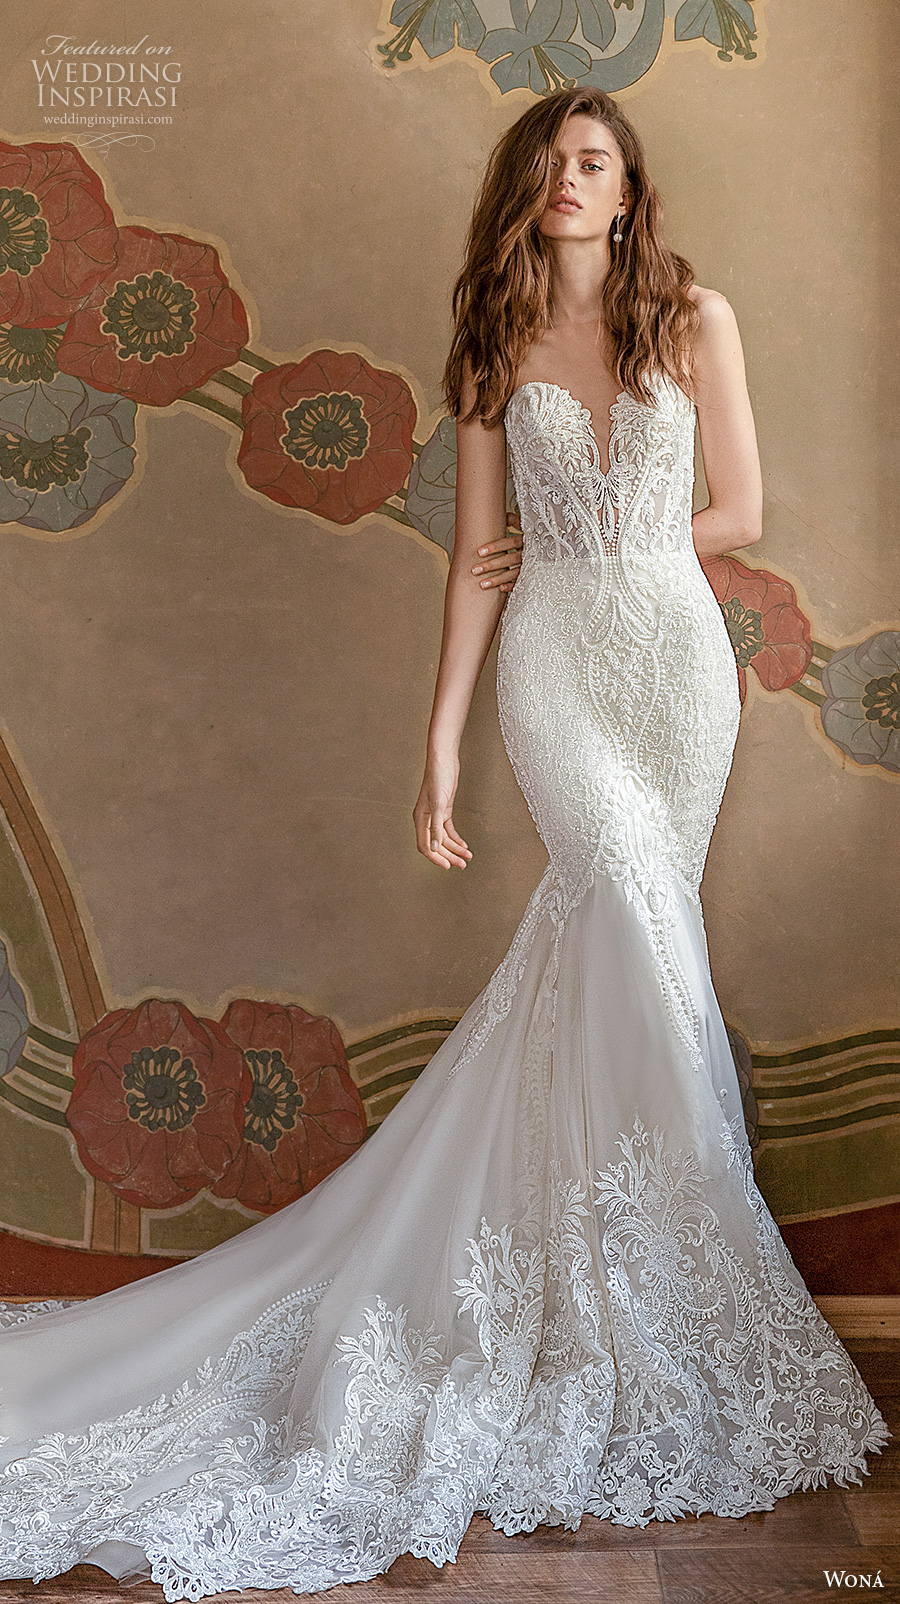 wona concept 2021 romance bridal strapless sweetheart neckline full embellishment mermaid wedding dress sheer button back chapel train (15) mv